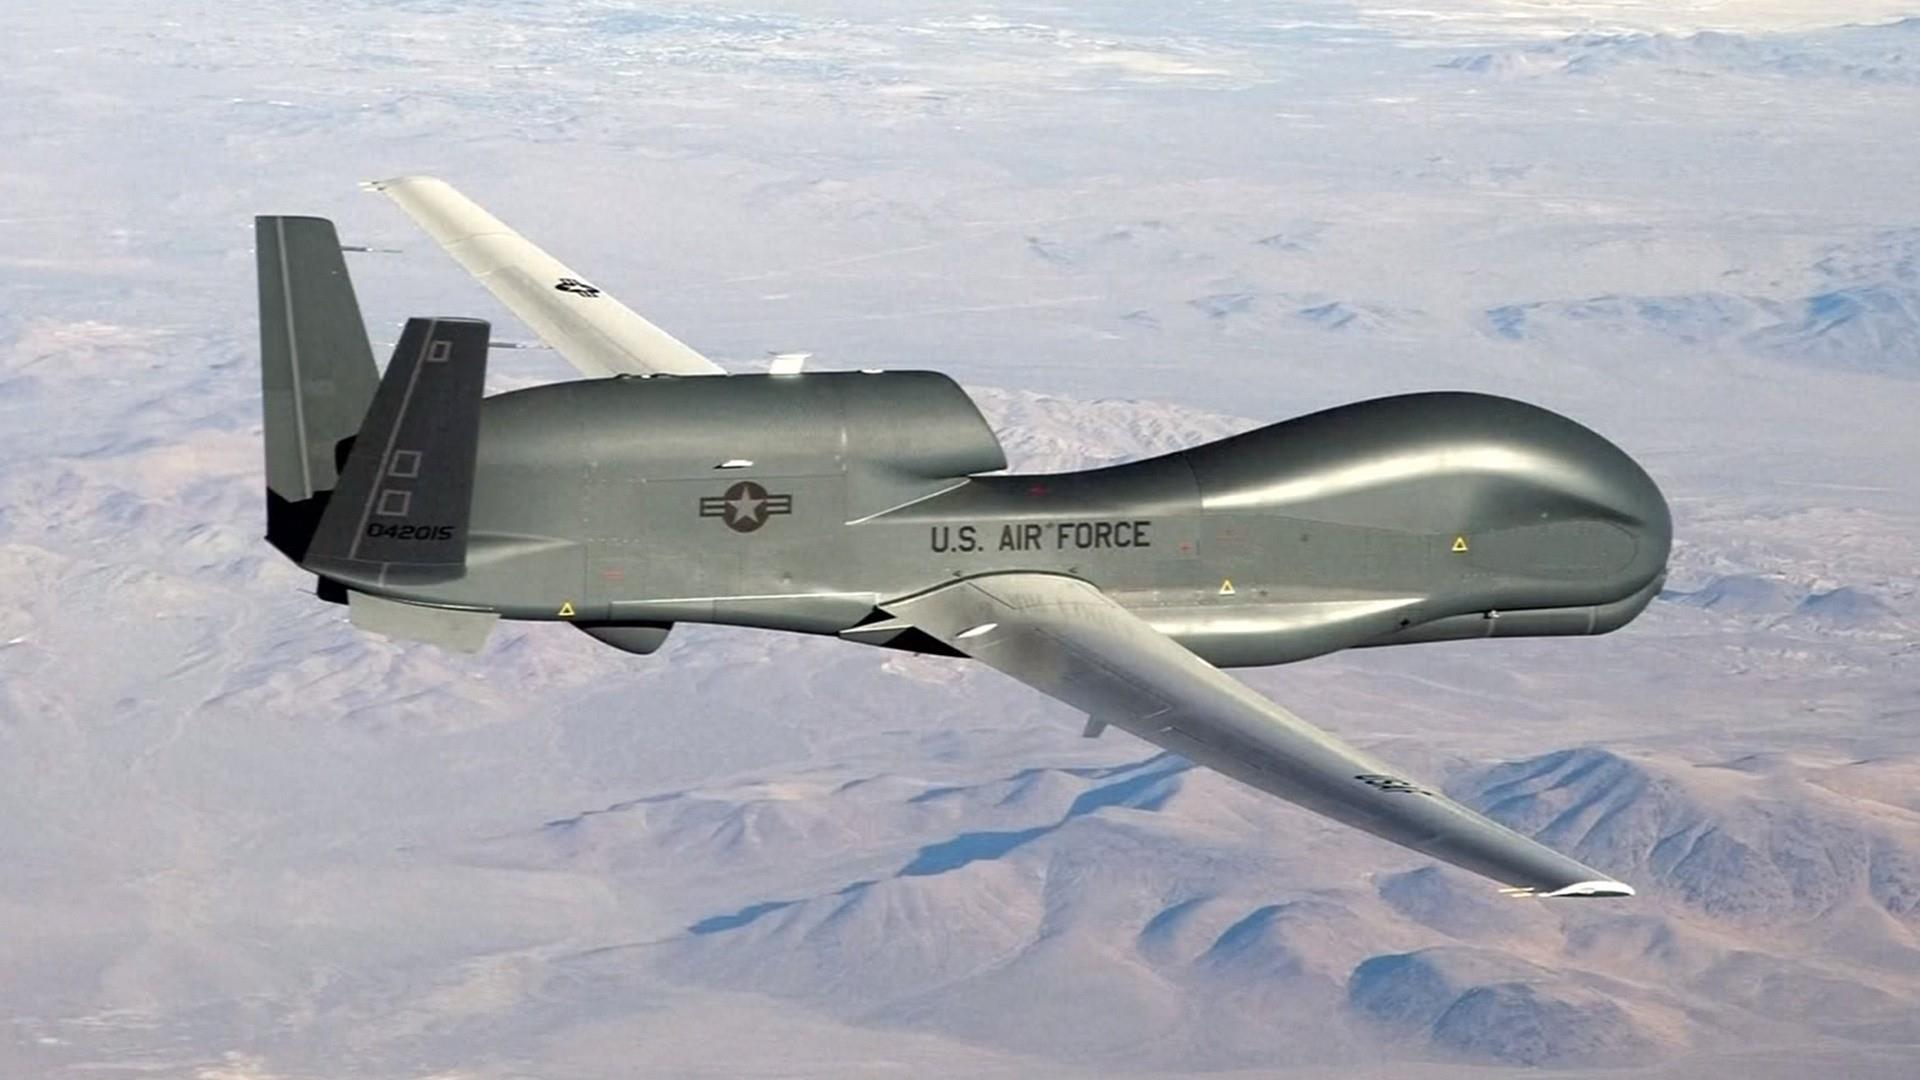 Iran shoots down US drone in international airspace